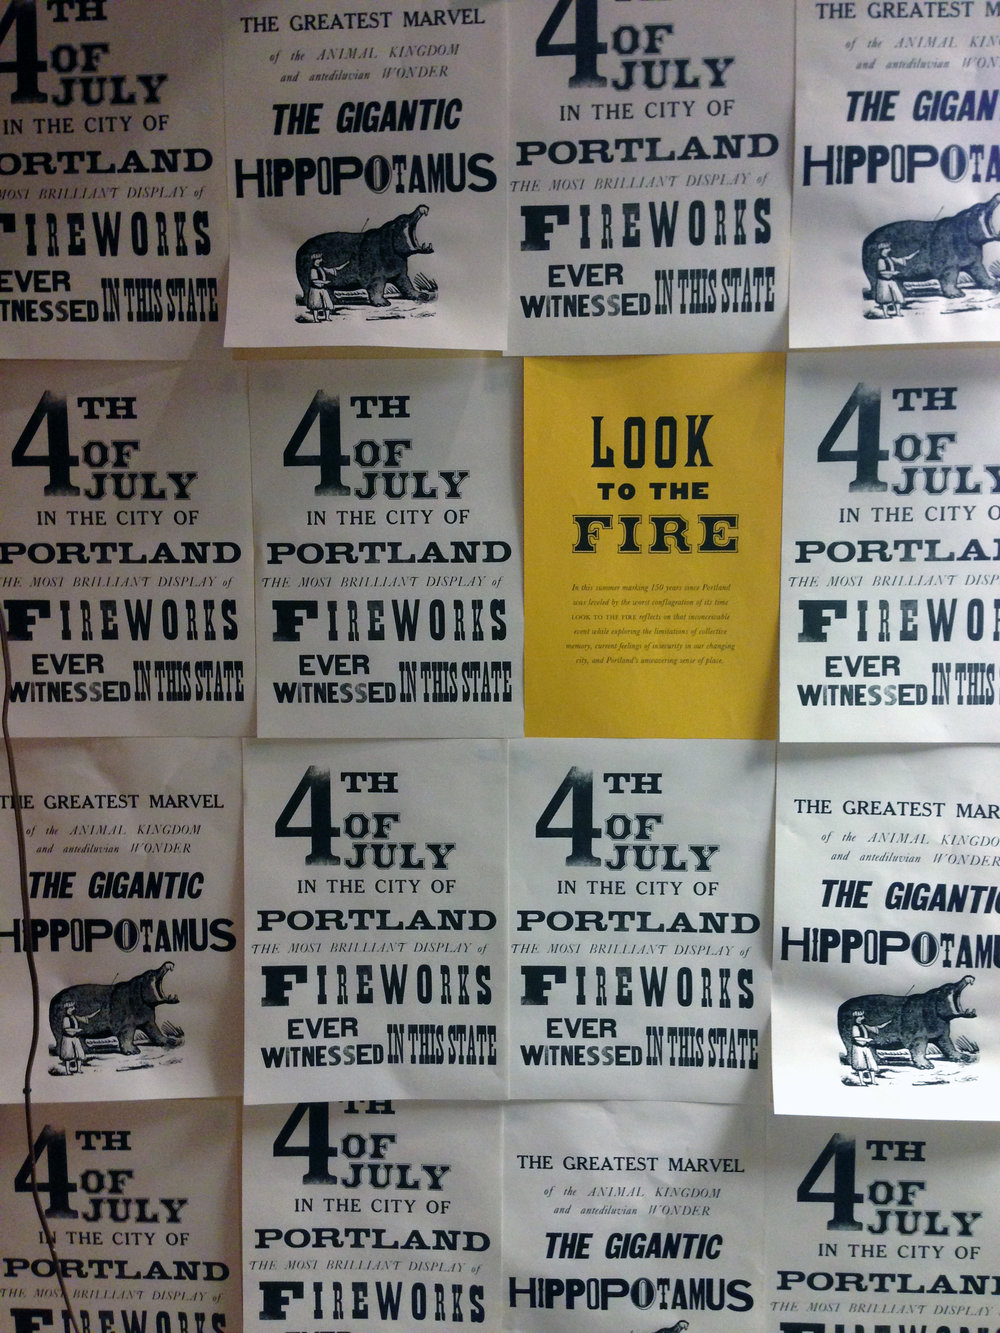 Look to the Fire_posters.JPG